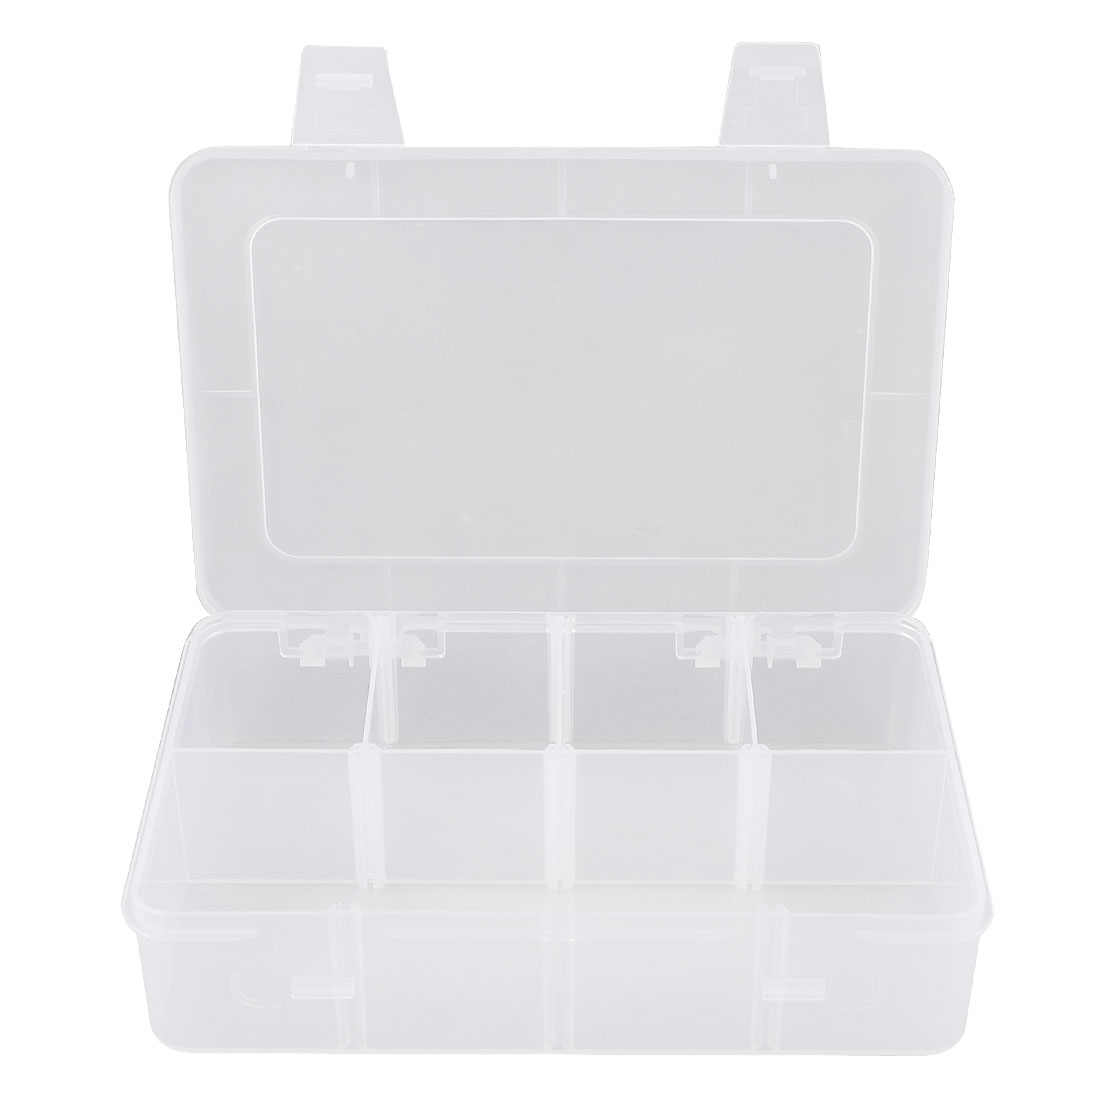 Clear White Plastic Electronic Component Storage Case Holder 18.5cm x 12cm x 4cm